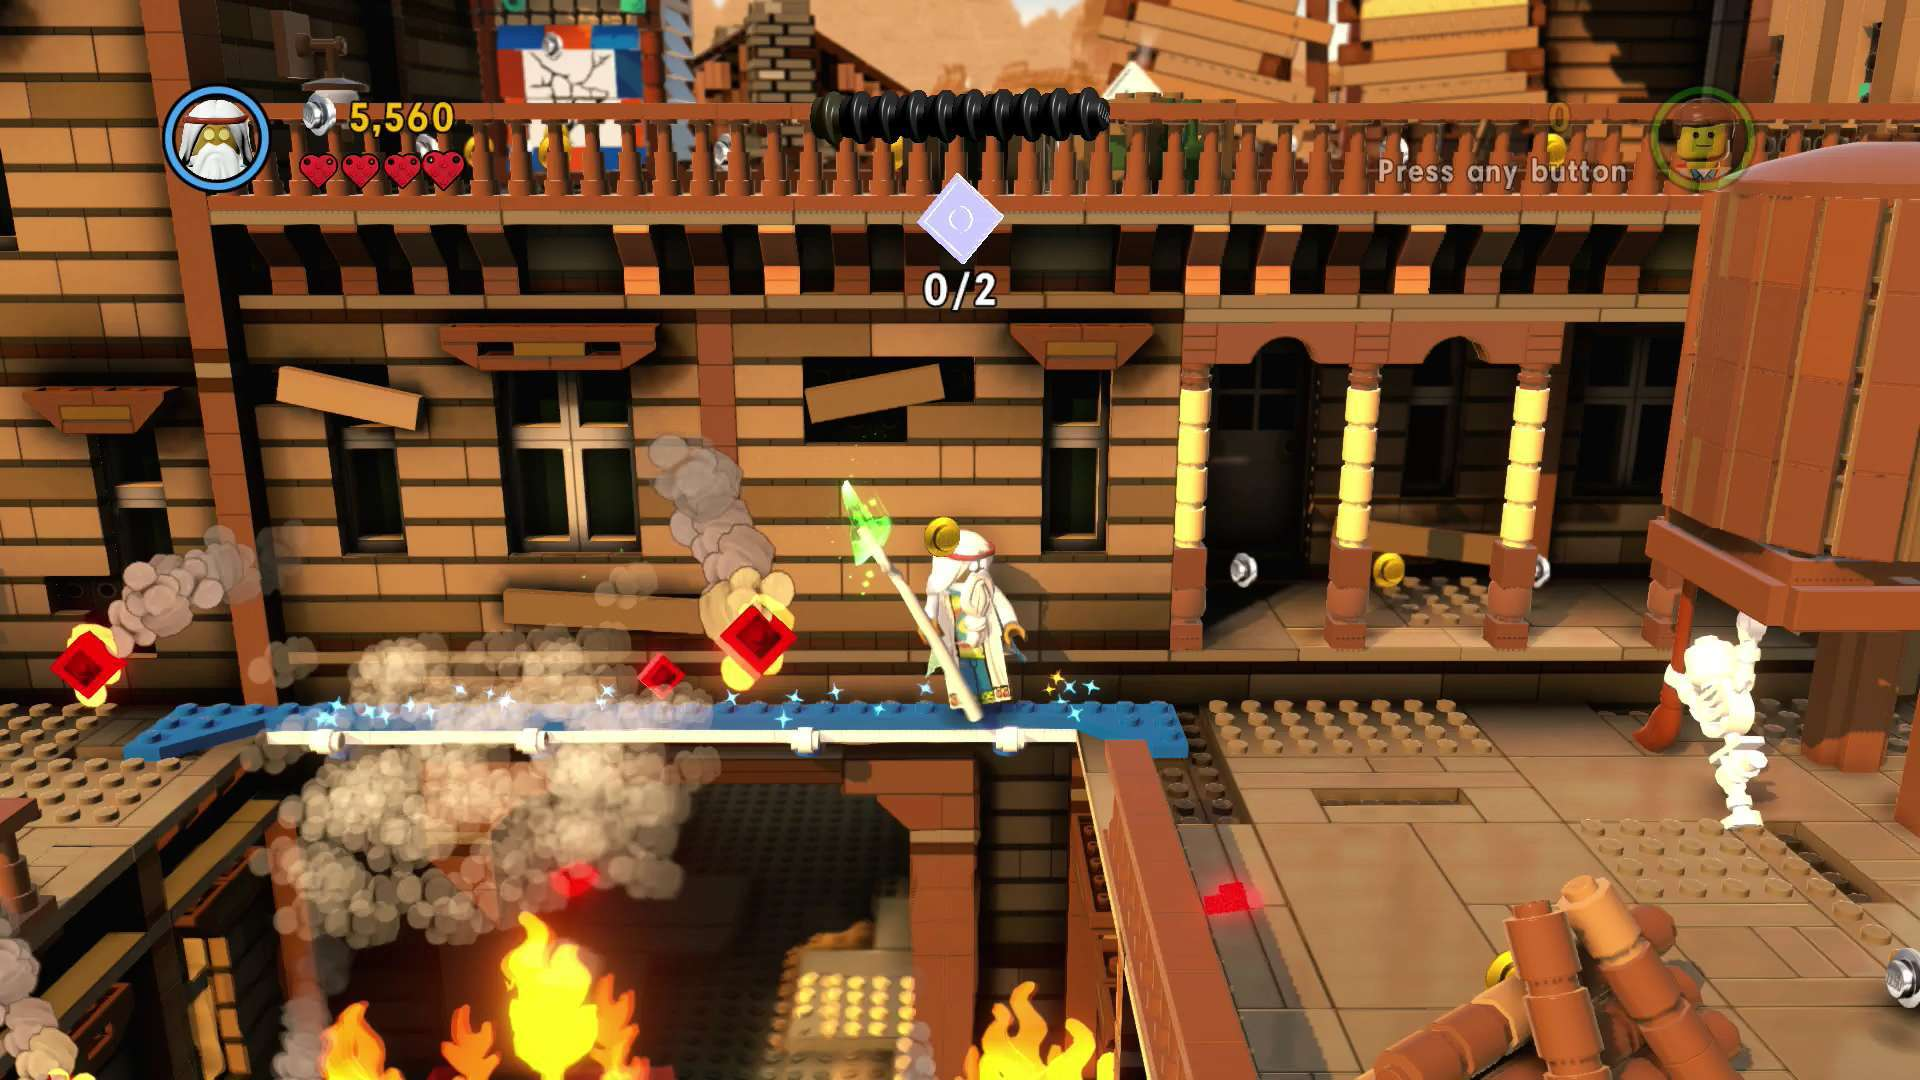 The-LEGO-Movie-Videogame-Screenshot-05.jpg